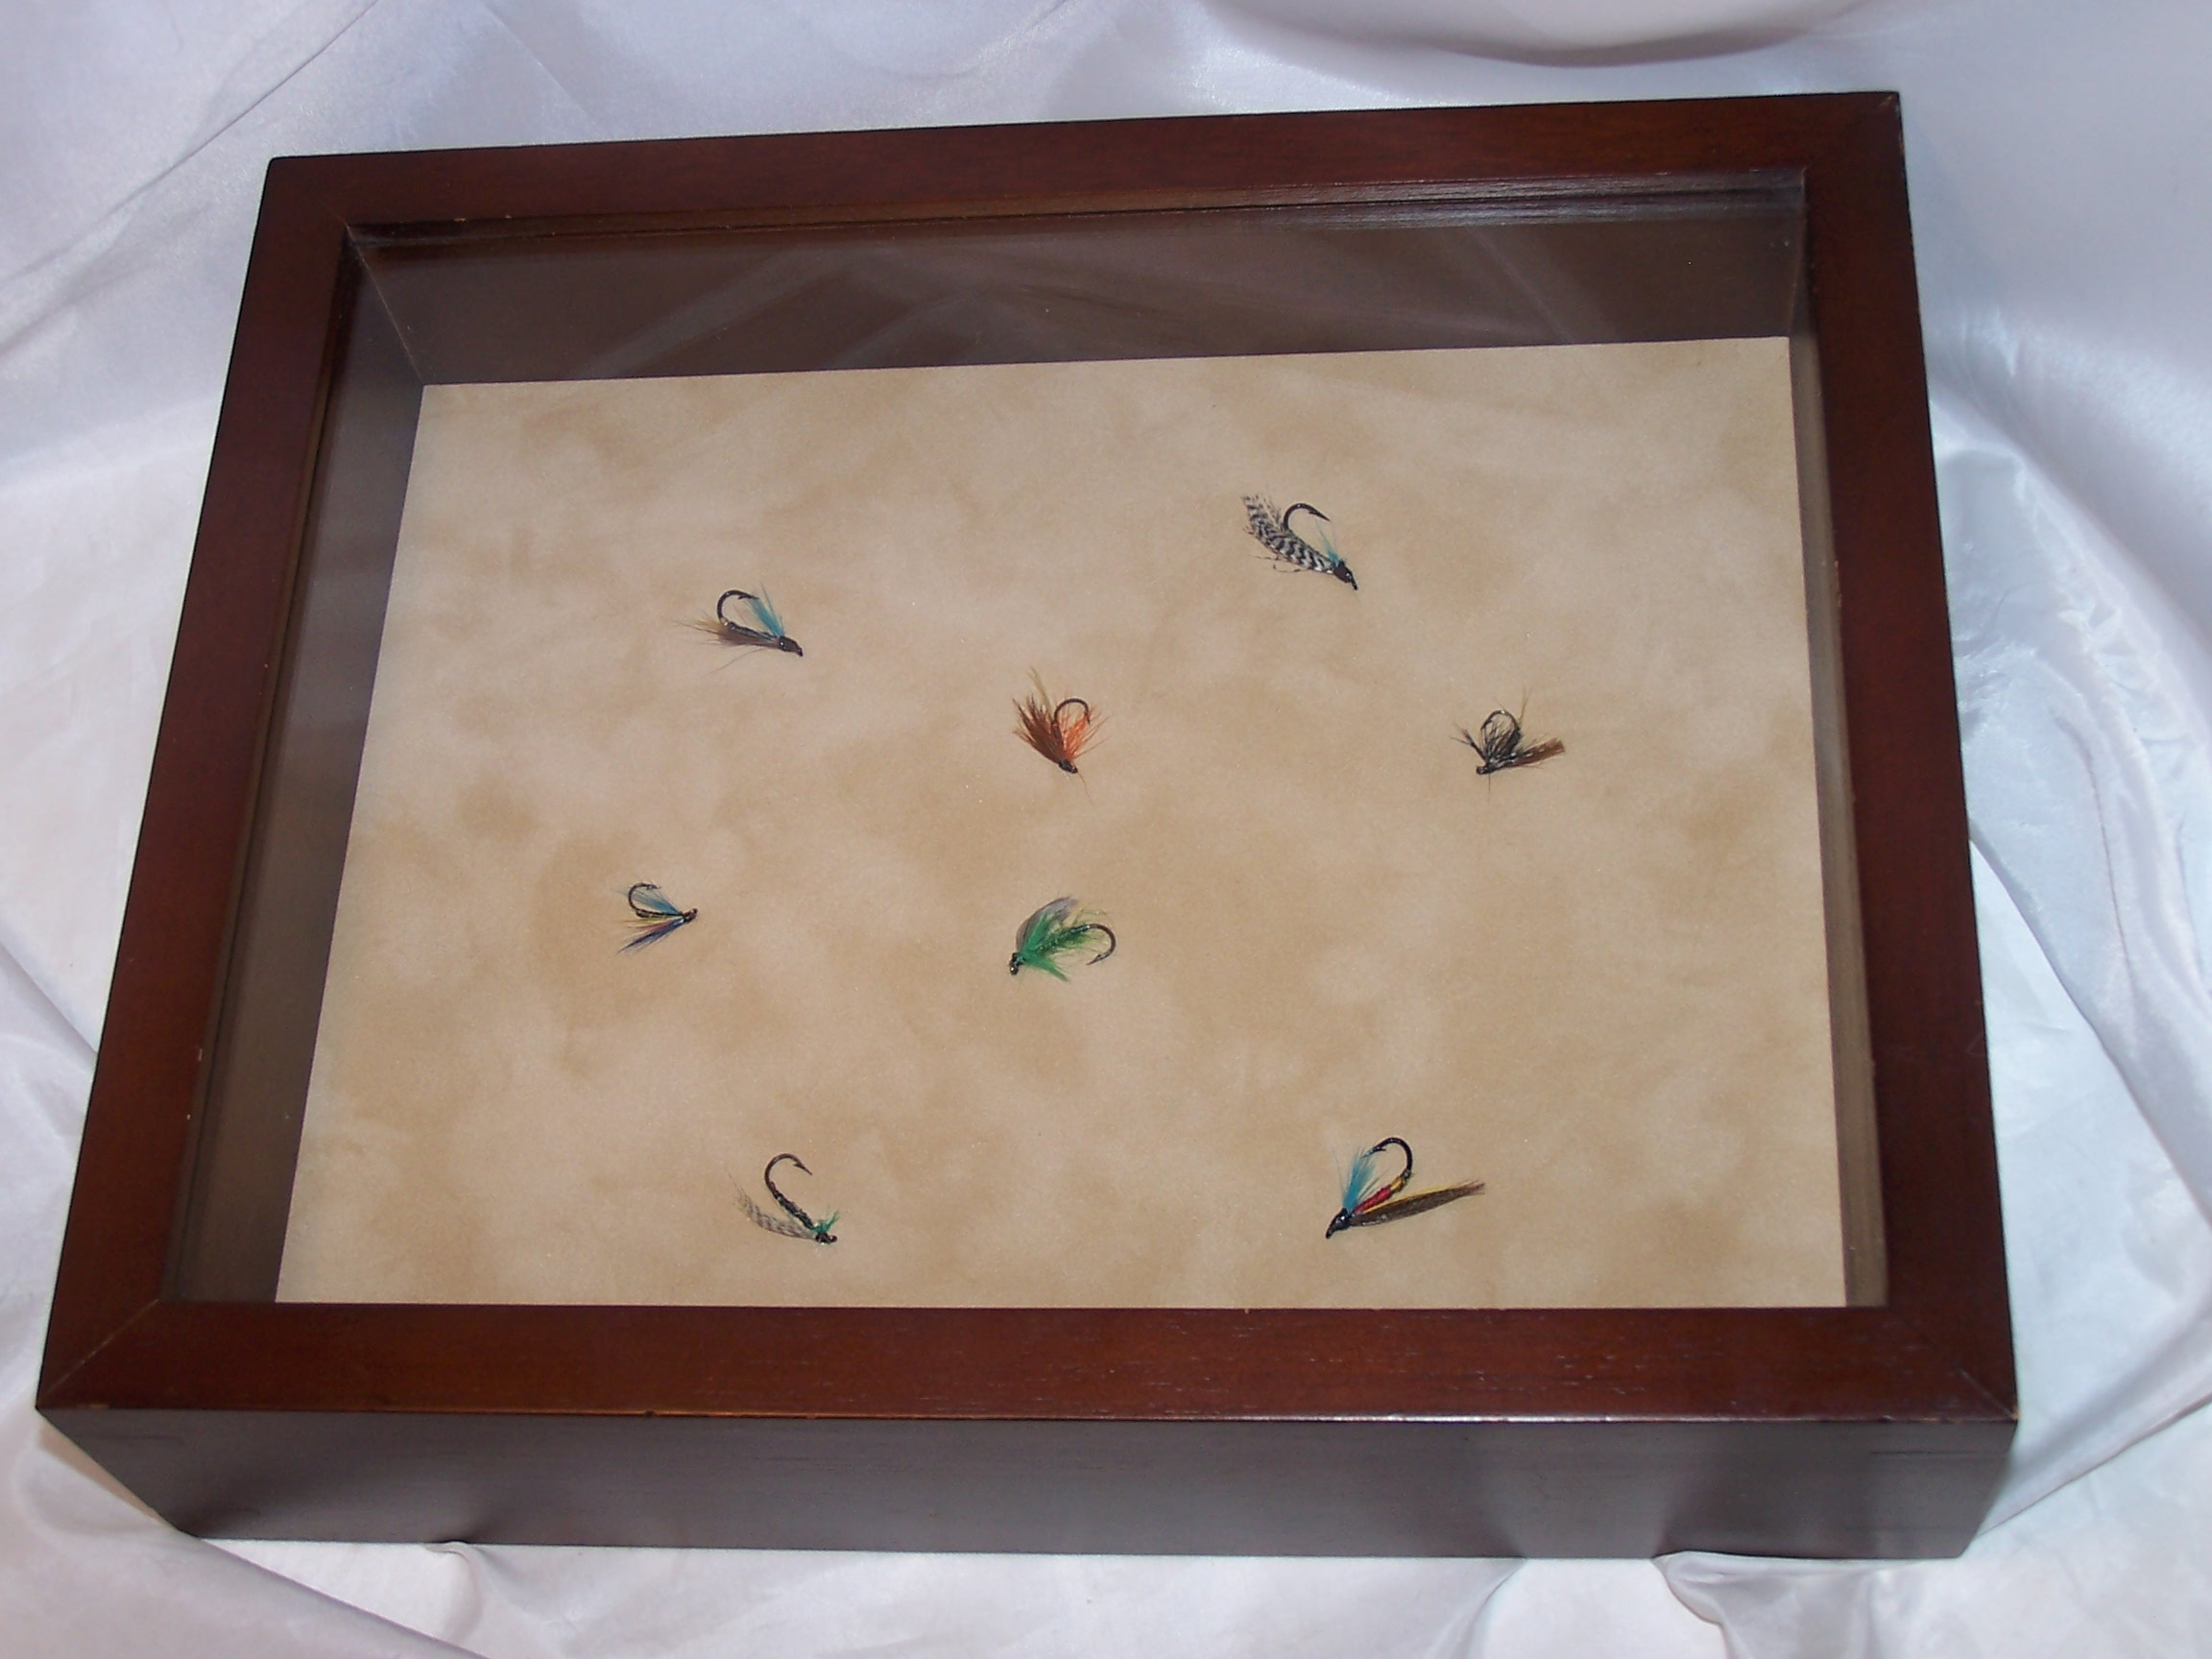 Fly Fishing Lures In Display Frame